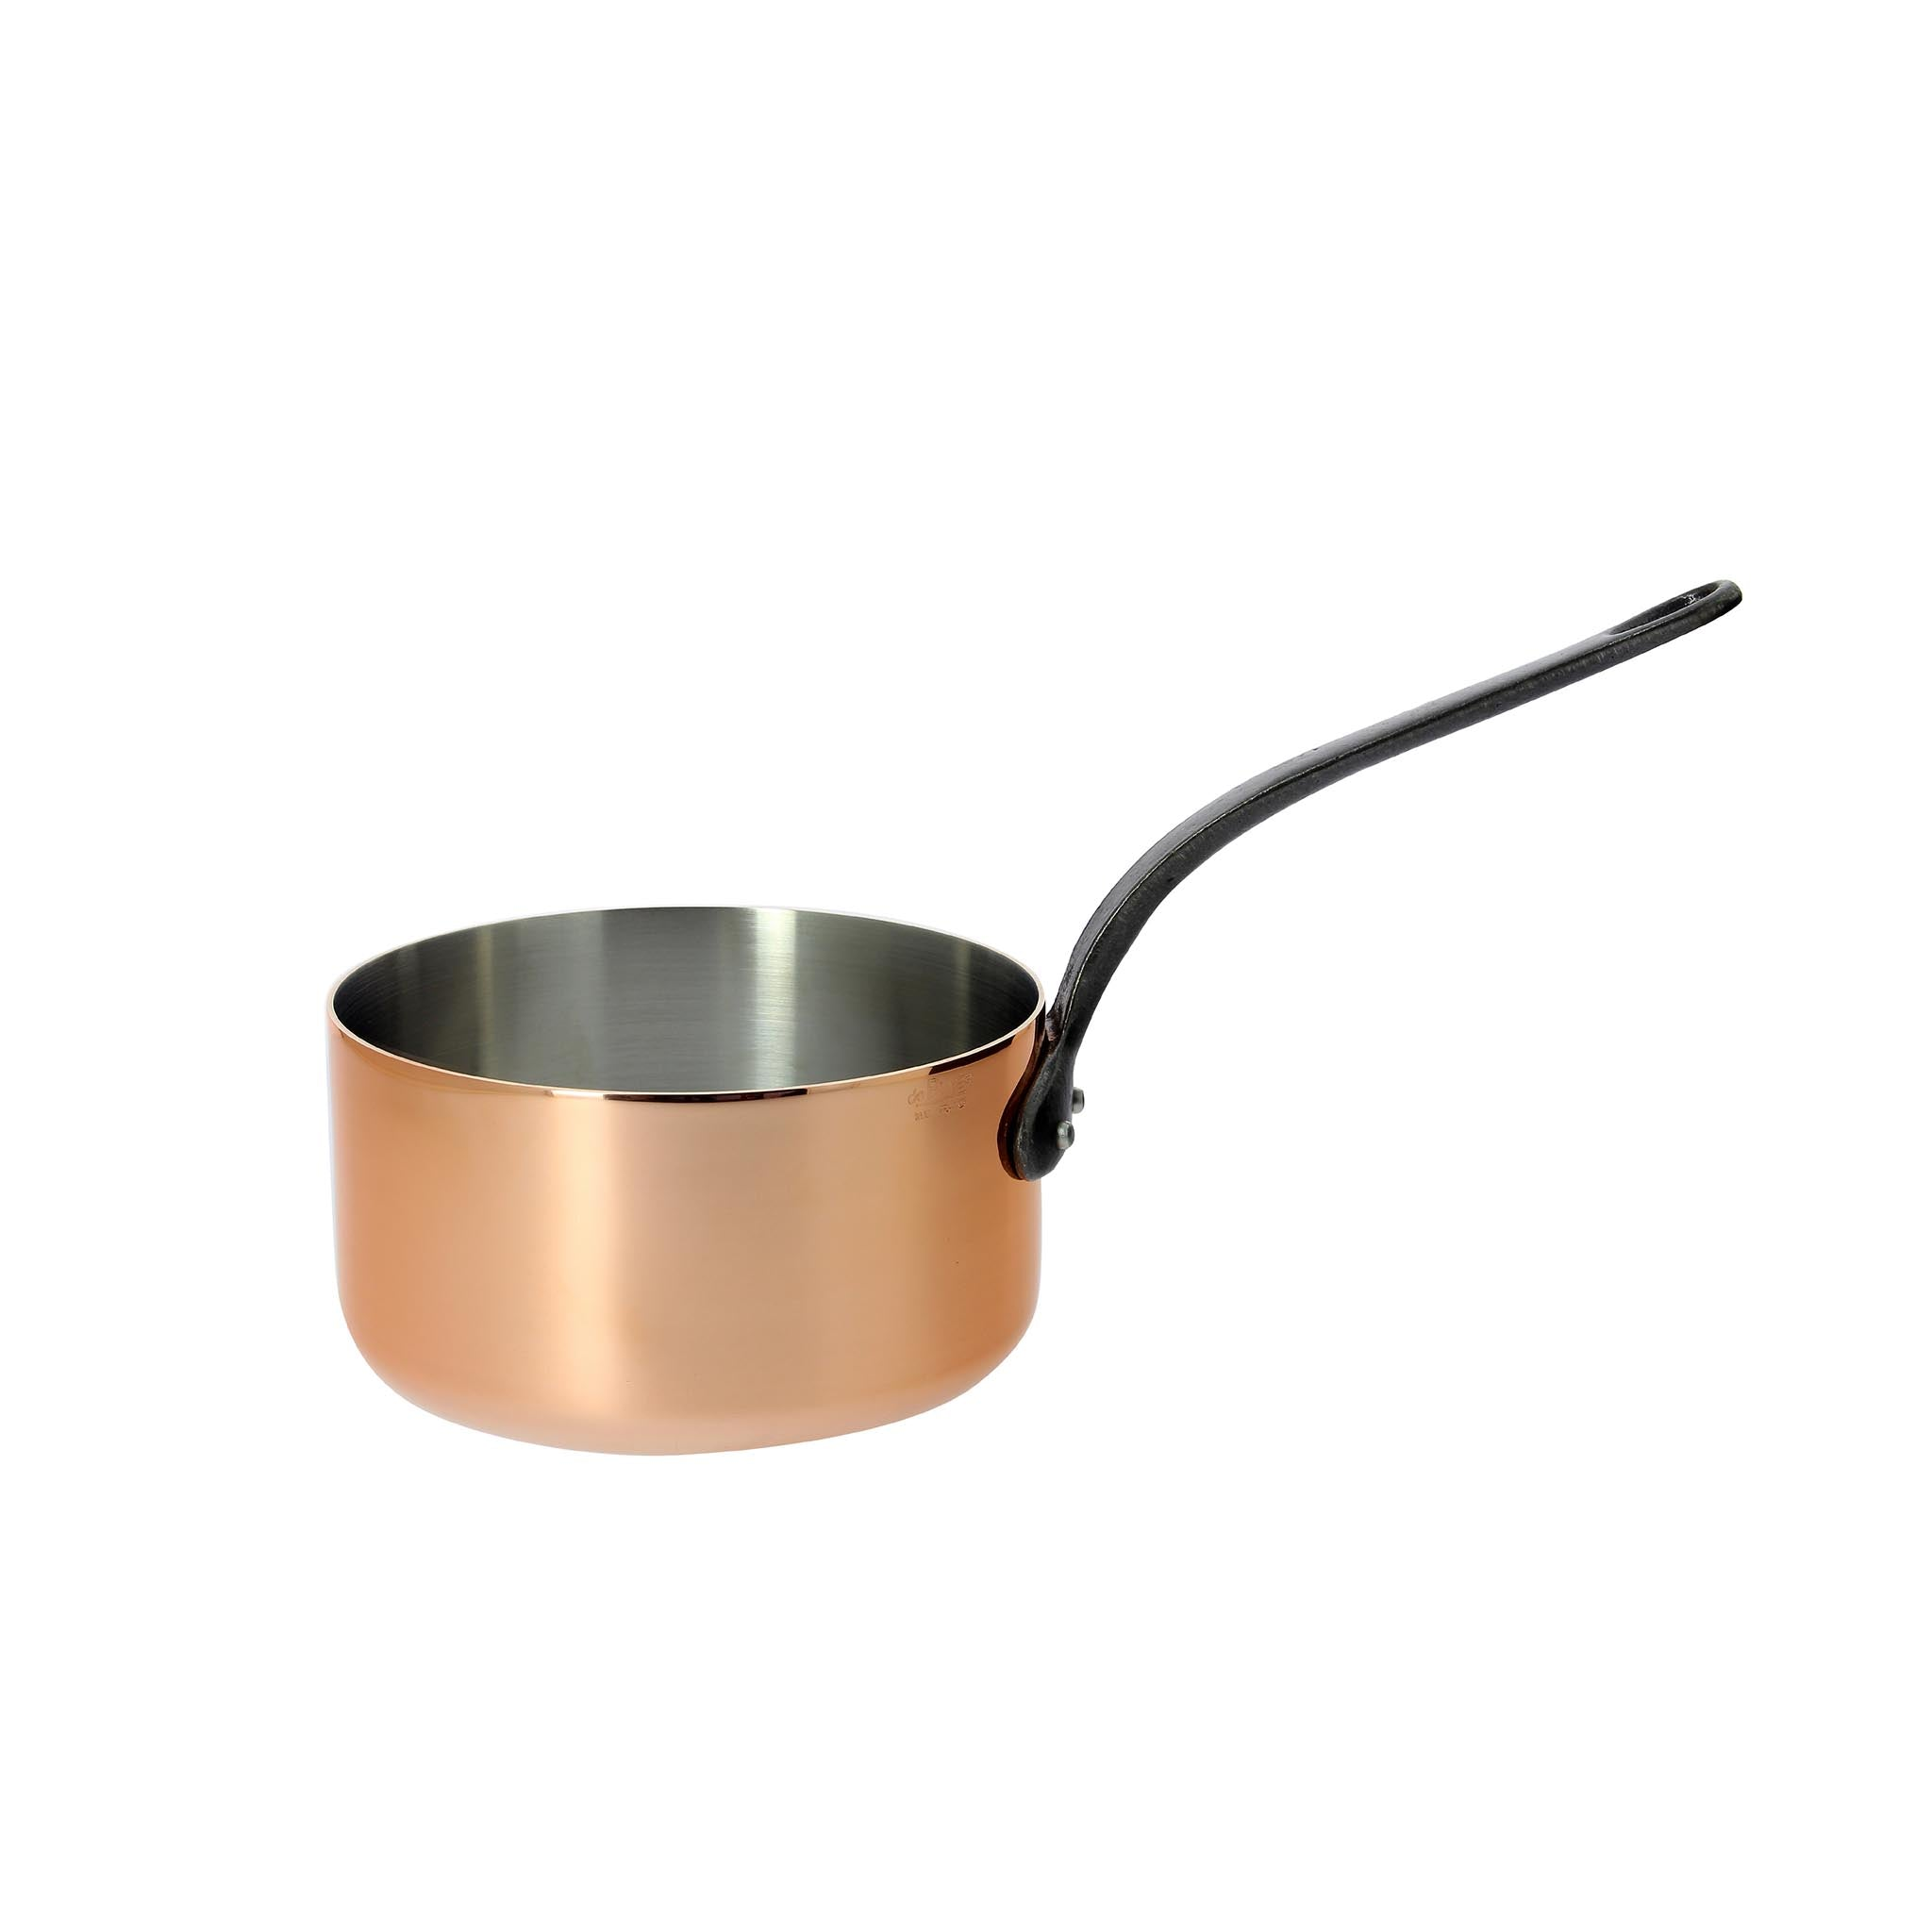 De Buyer Prima Matera Induction-Compatible Copper Saucepan